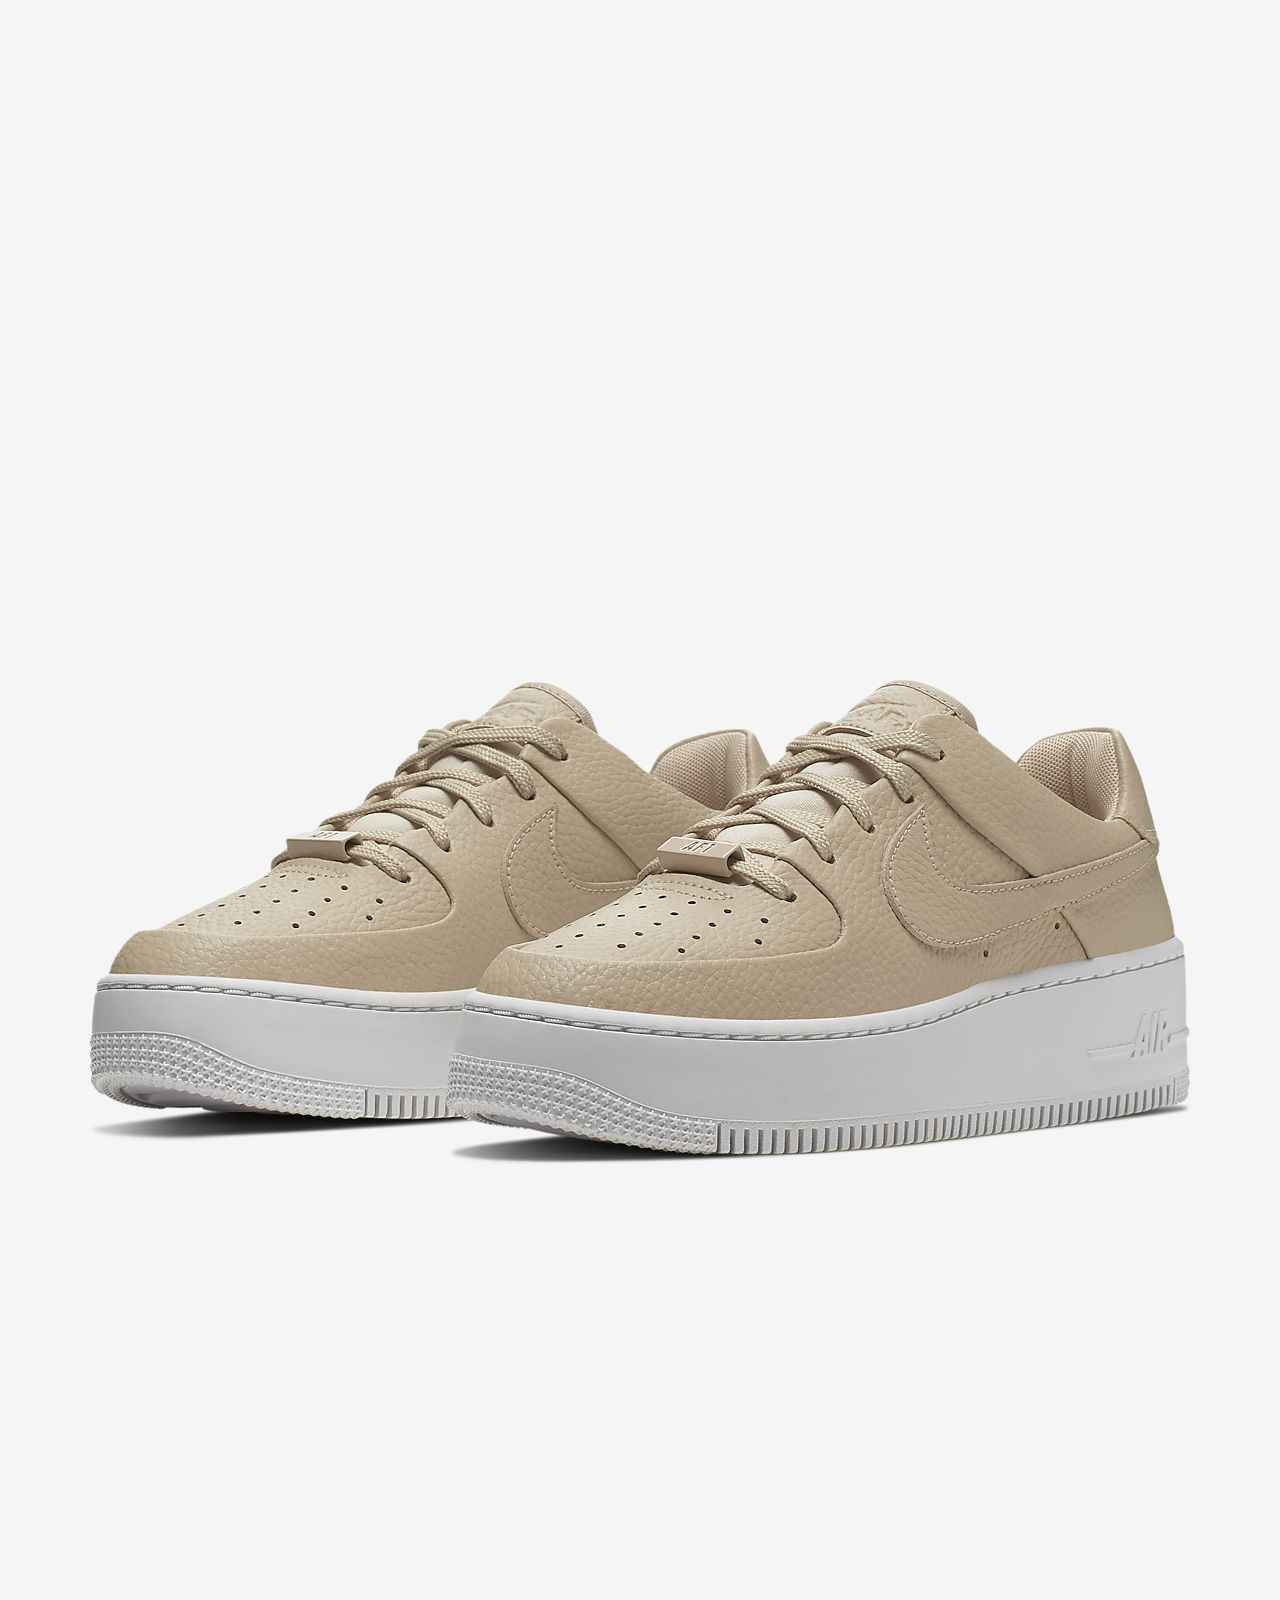 buy online 9009a a37f6 Nike Air Force 1 Sage Low 2 Women's Shoe